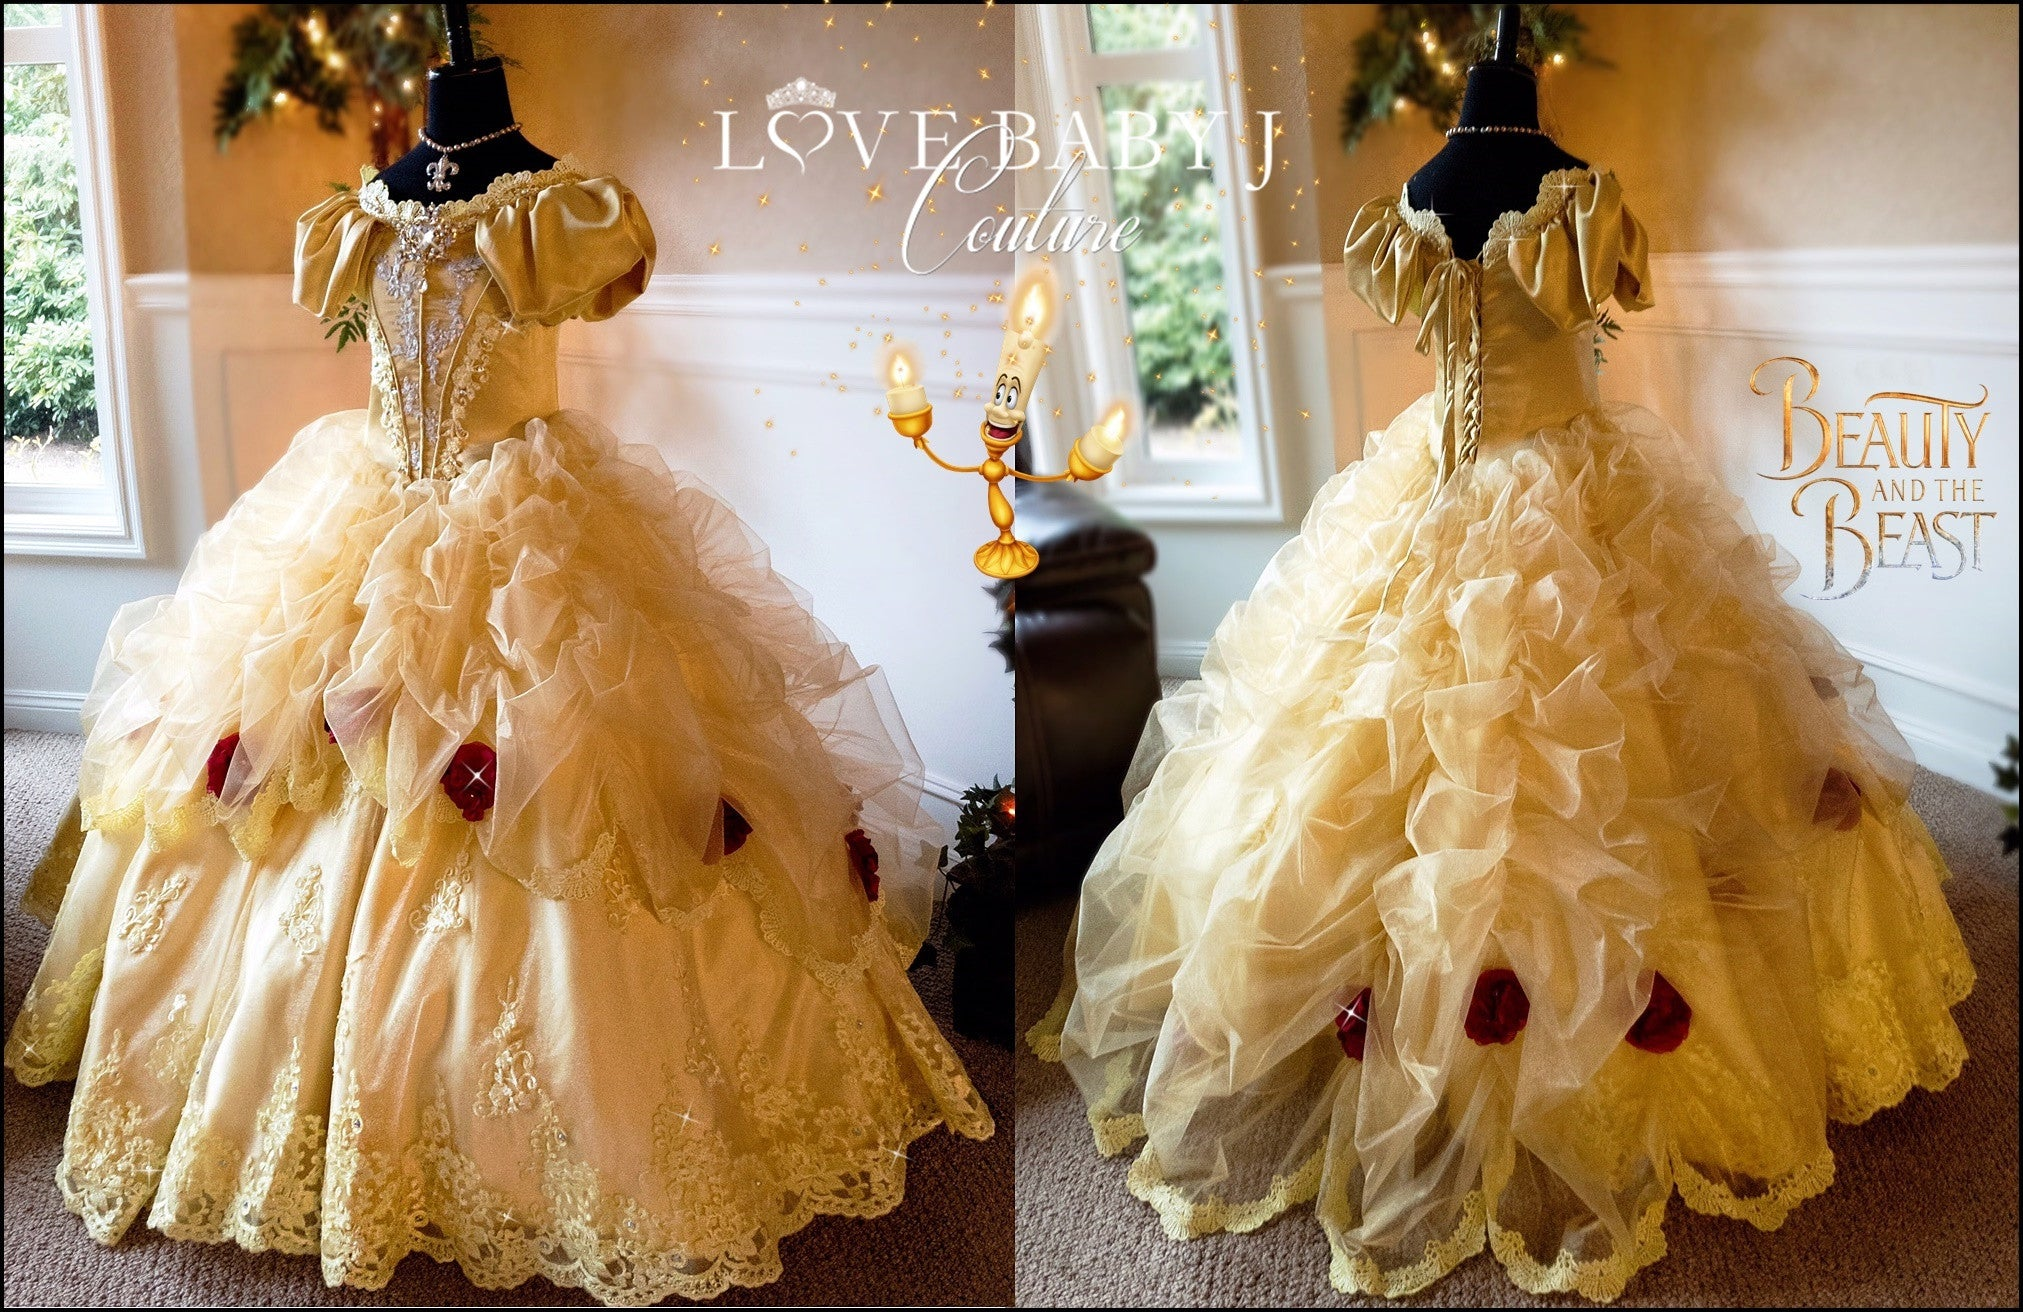 Belle A Luxurious Beauty And The Beast Inspired Ball Gown